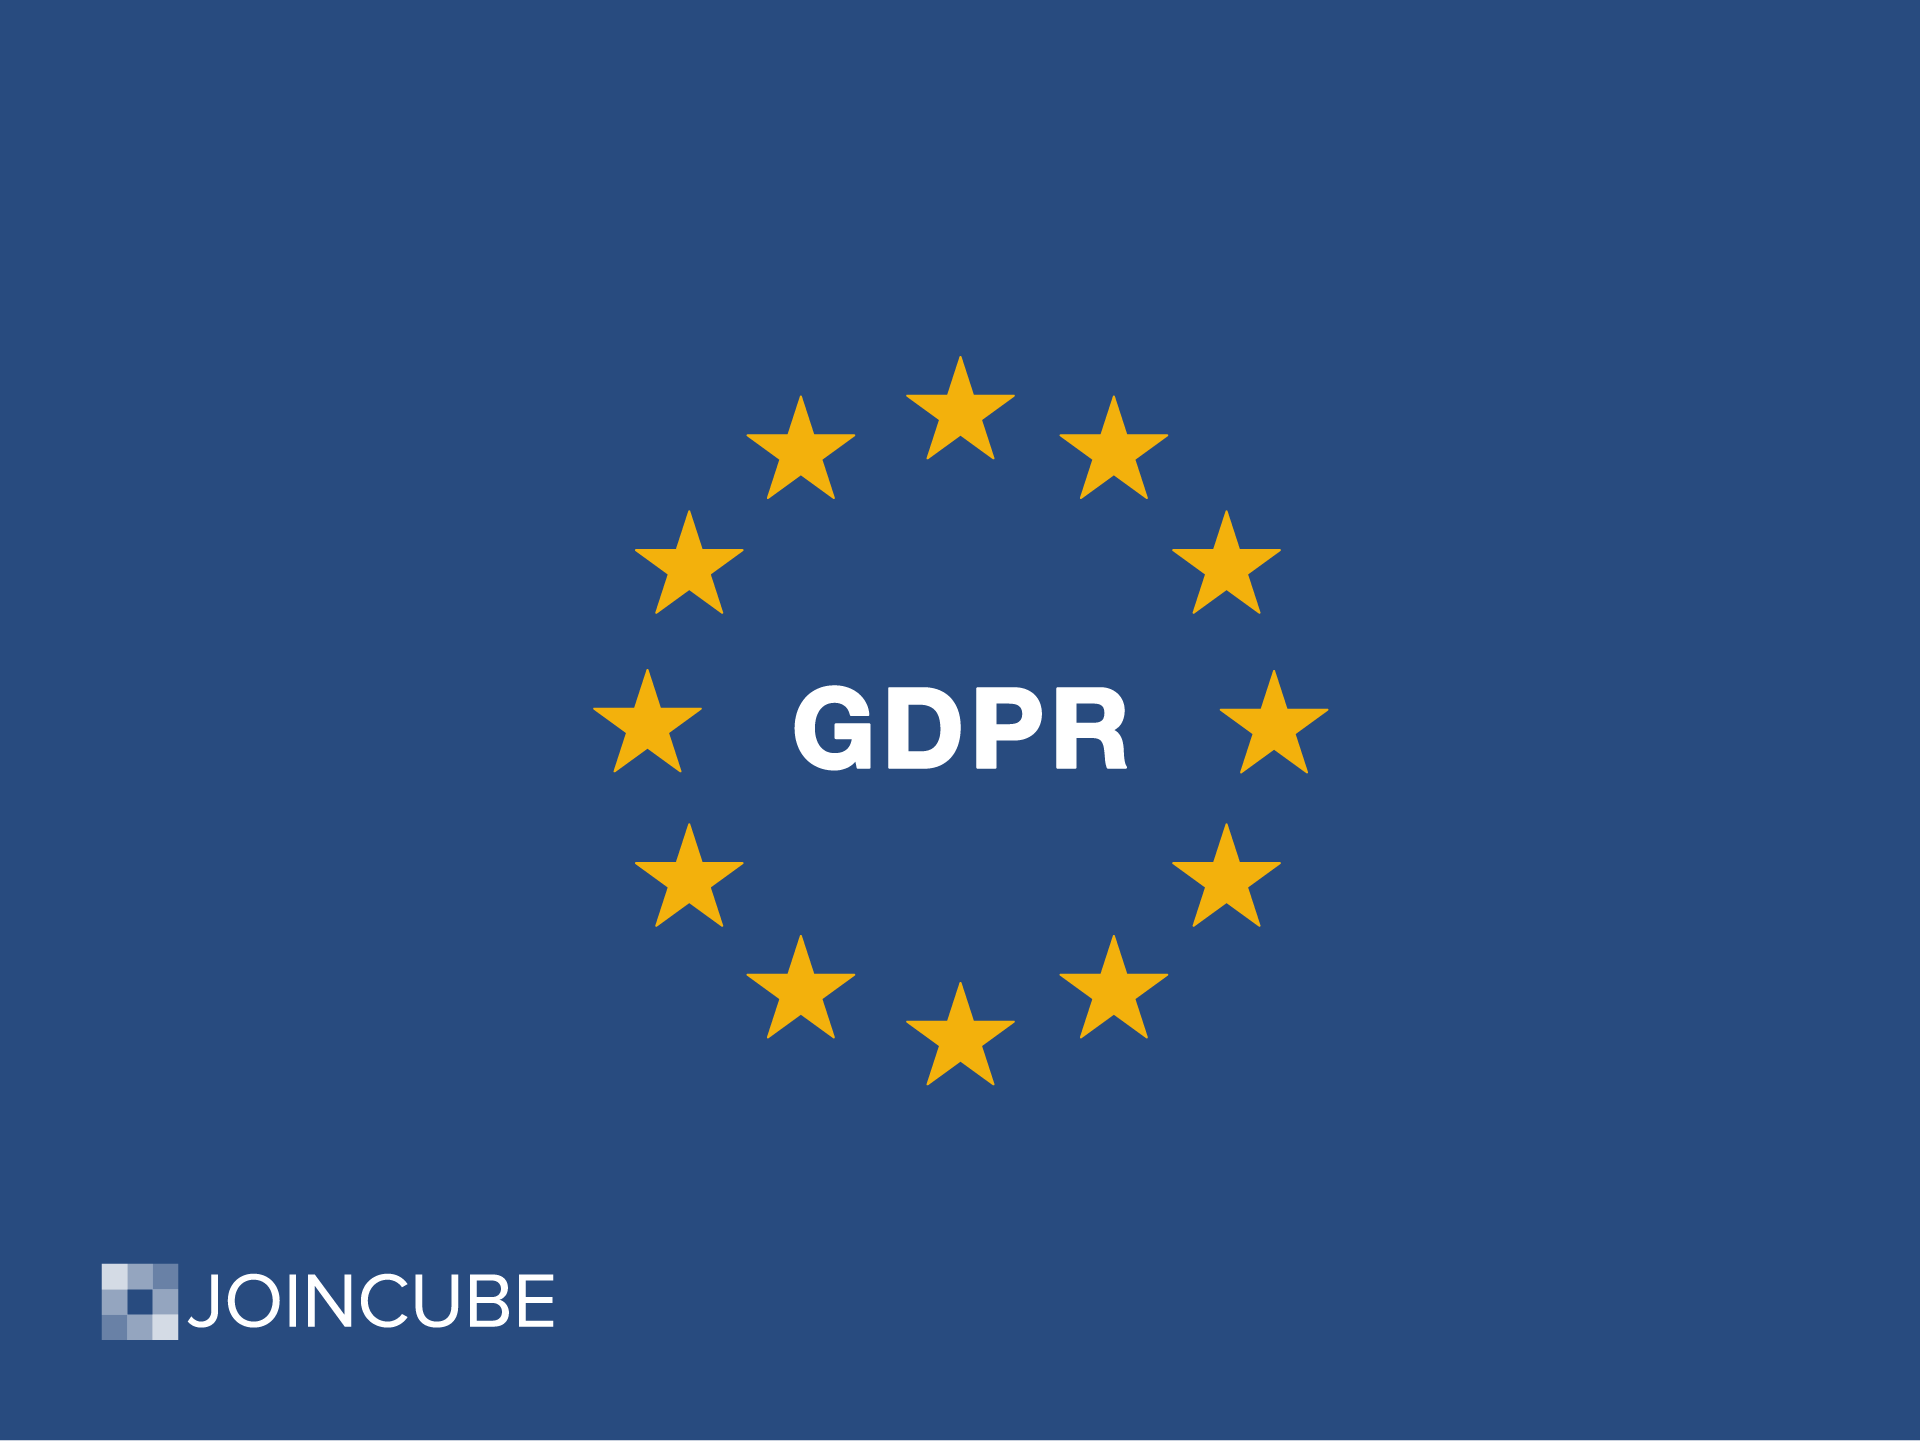 How Joincube is complying with GDPR[:]